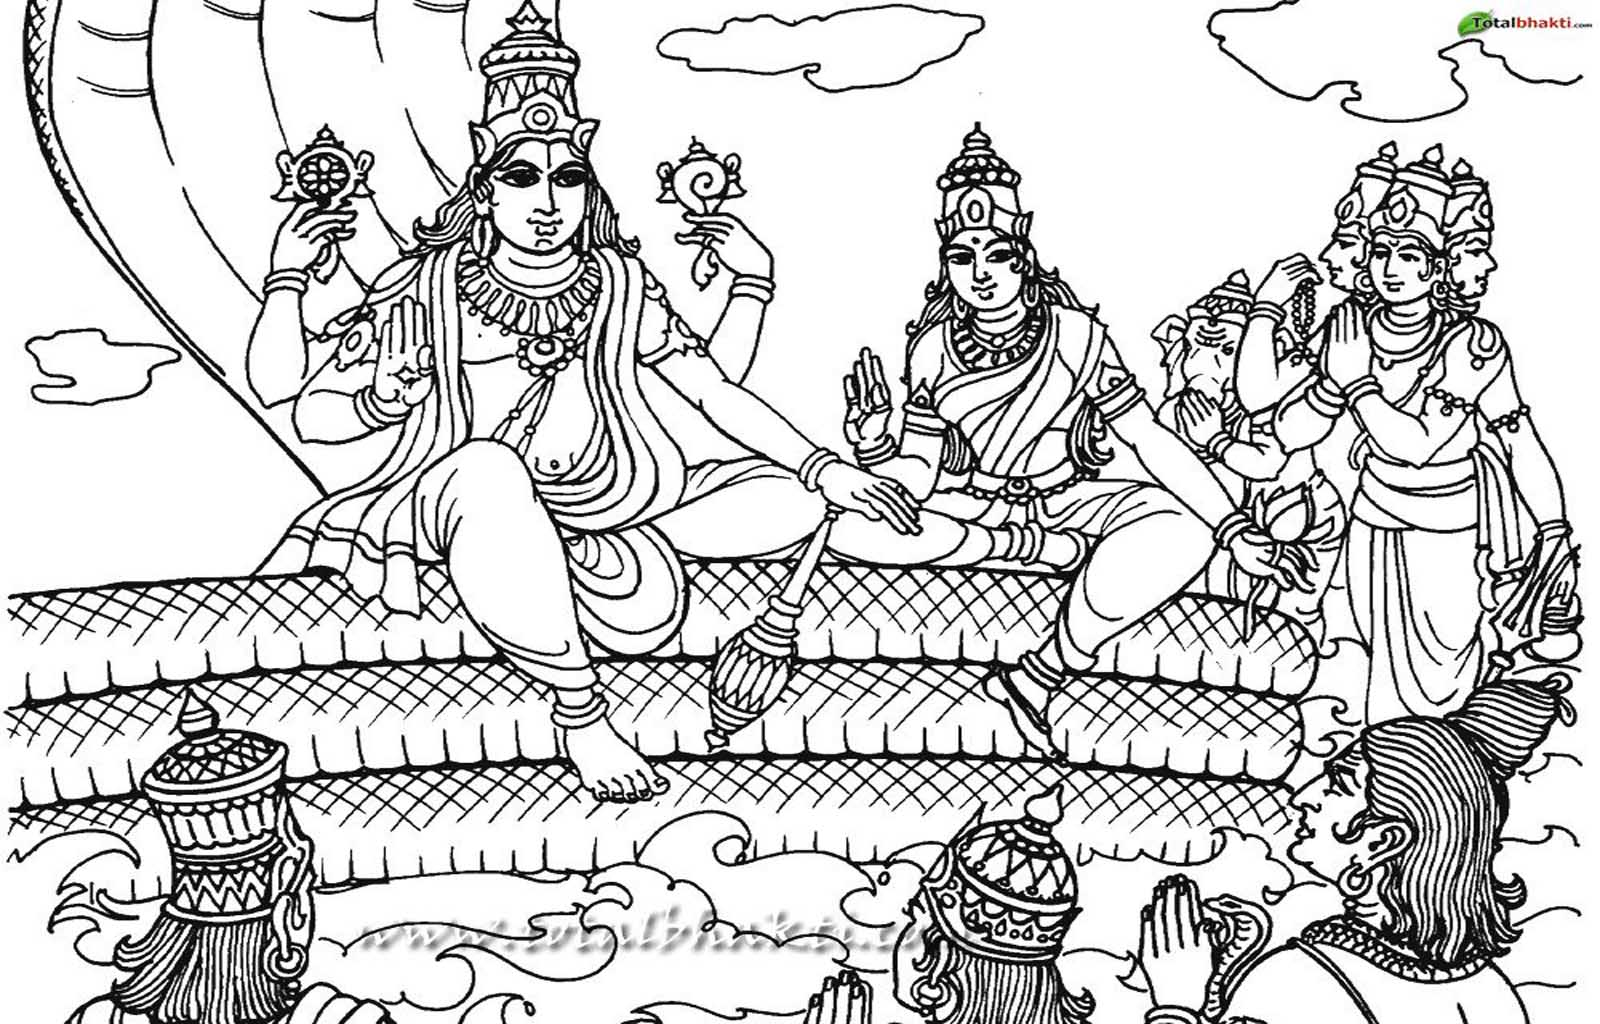 lord brahma coloring pages - photo#20